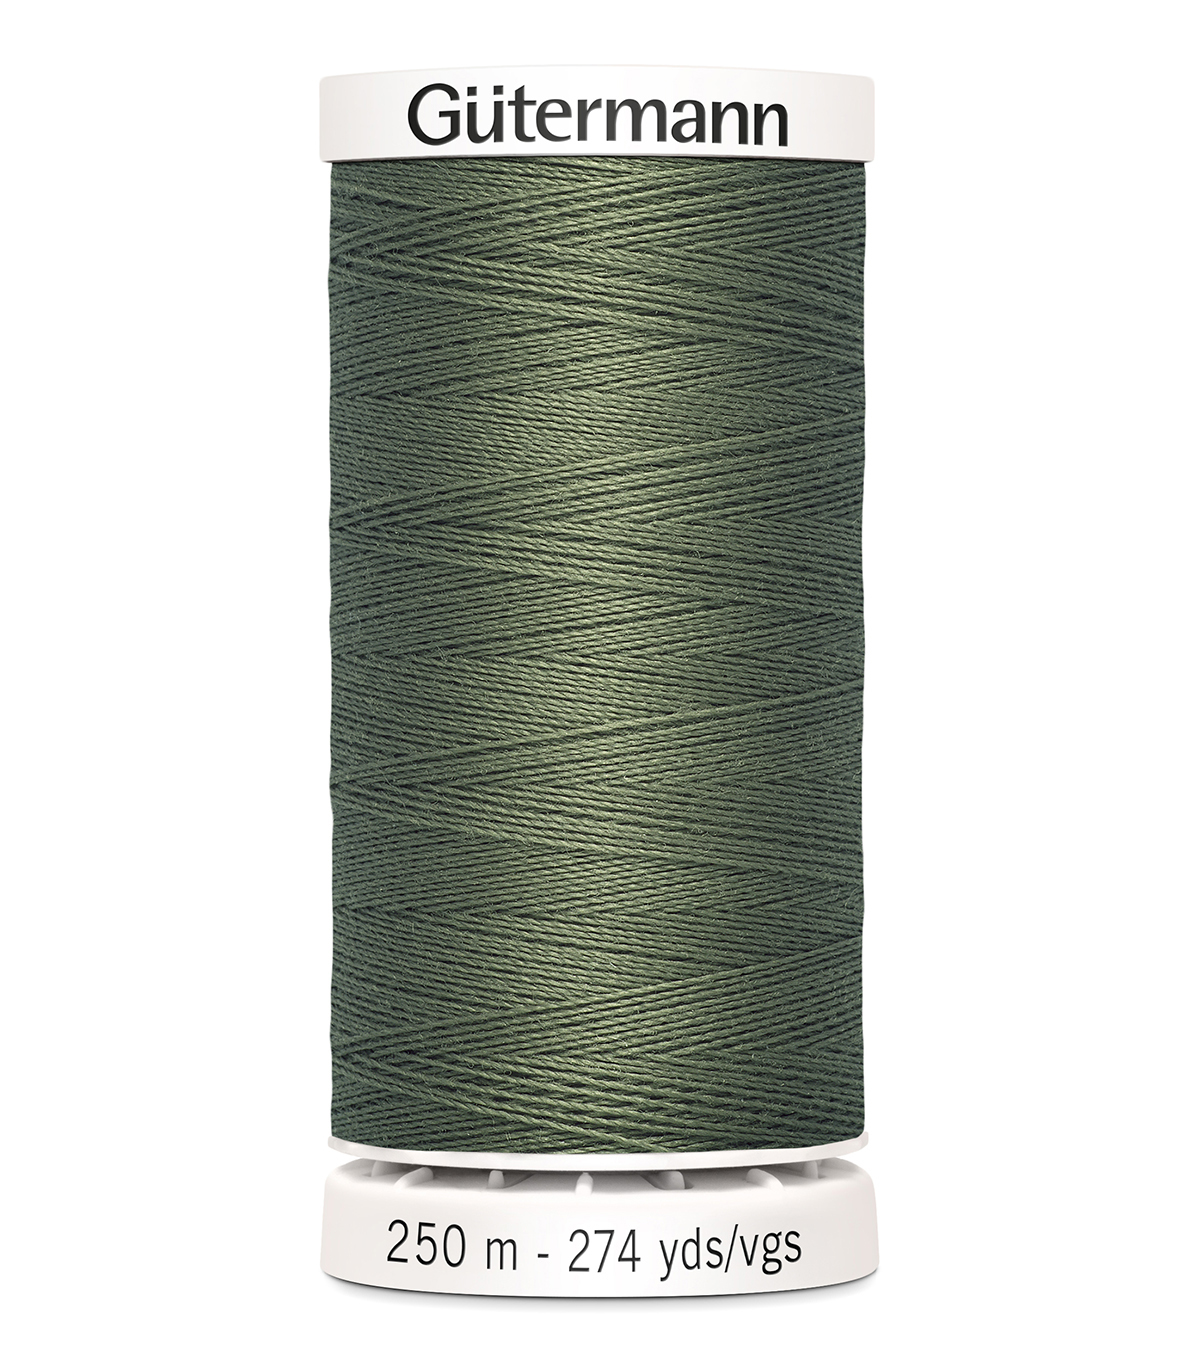 Gutermann Sew-All Thread 273Yds-(600 & 700 series) Cool Tones , Green #774